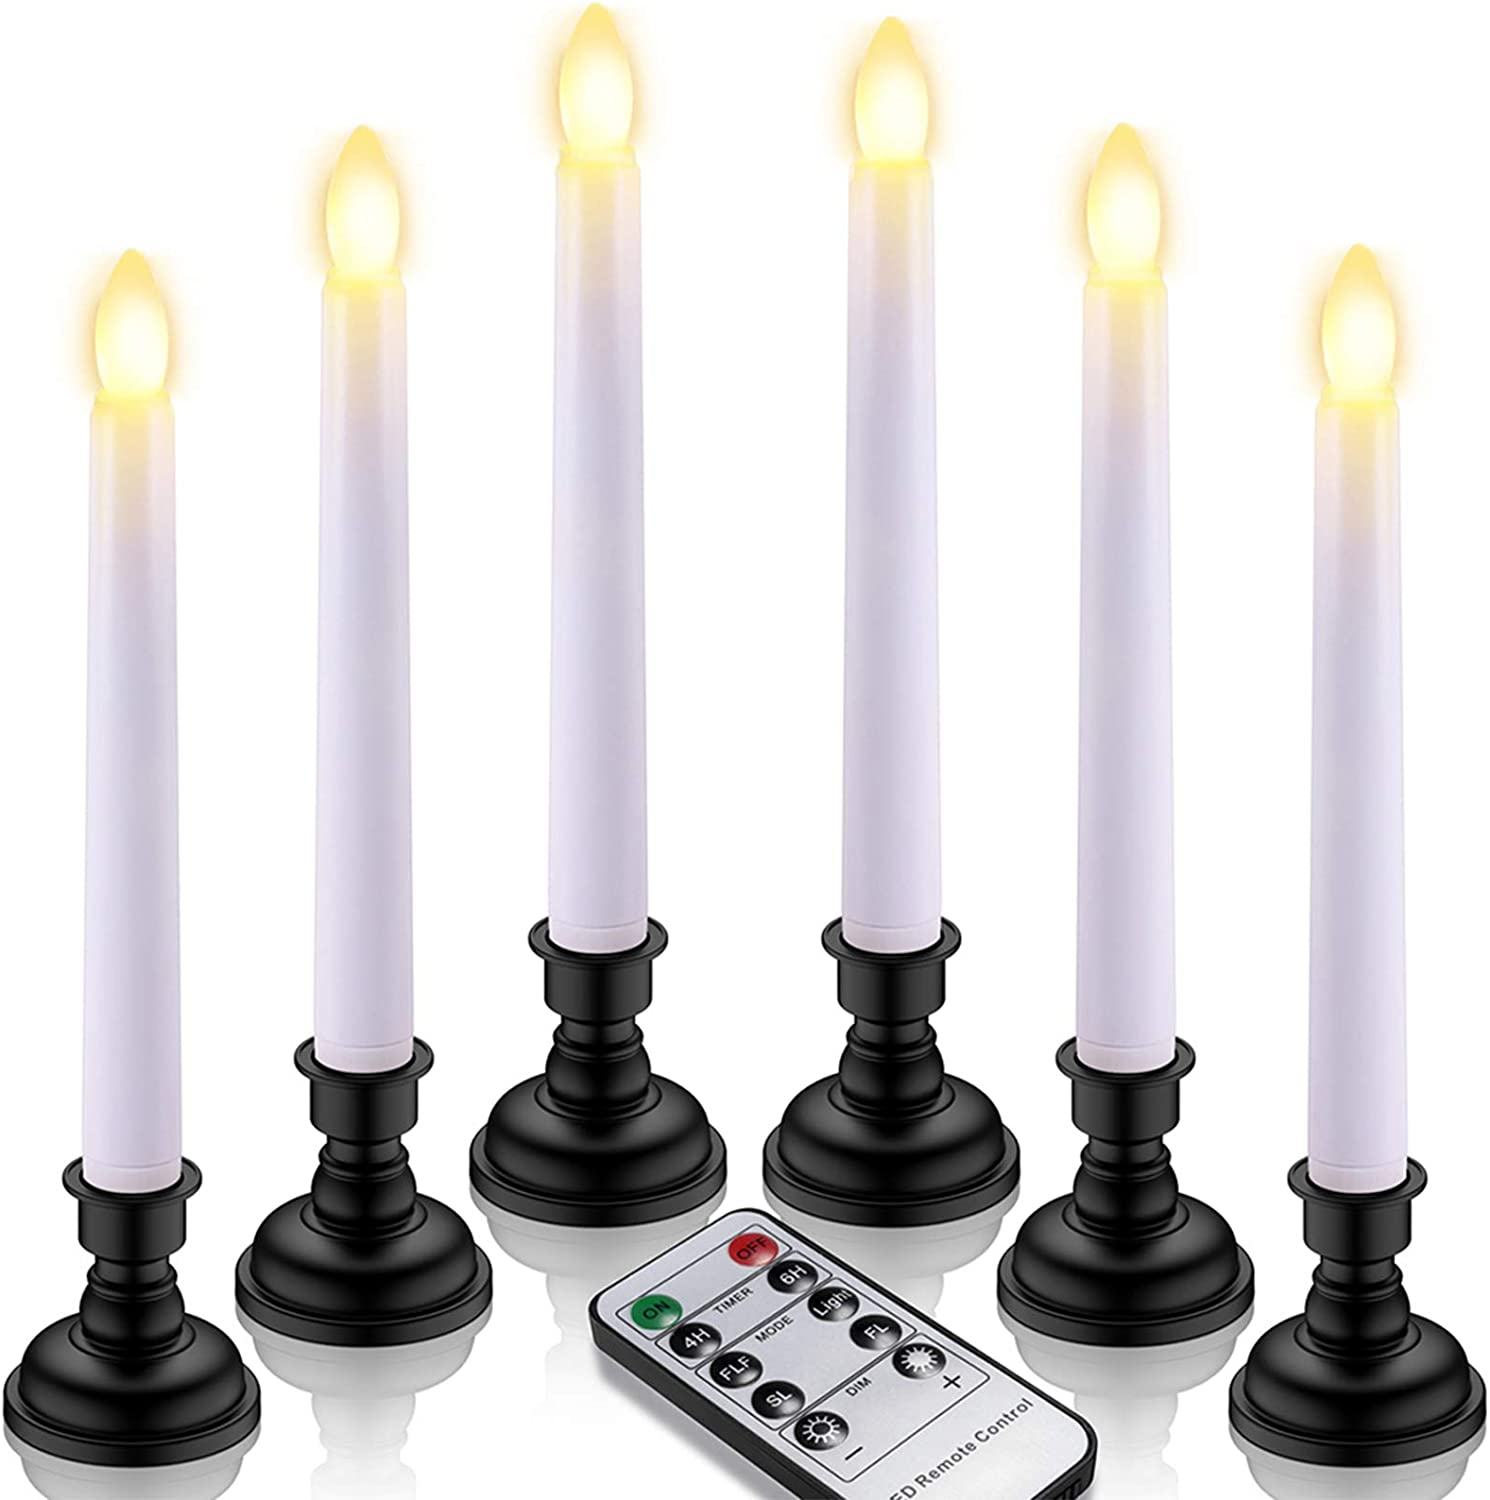 LED Taper Candles, Yme 6pcs Battery Window Candles with Remote Timer Flickering Flameless Candlesticks with Black Candle Holders for Home Christmas Party Decor – White